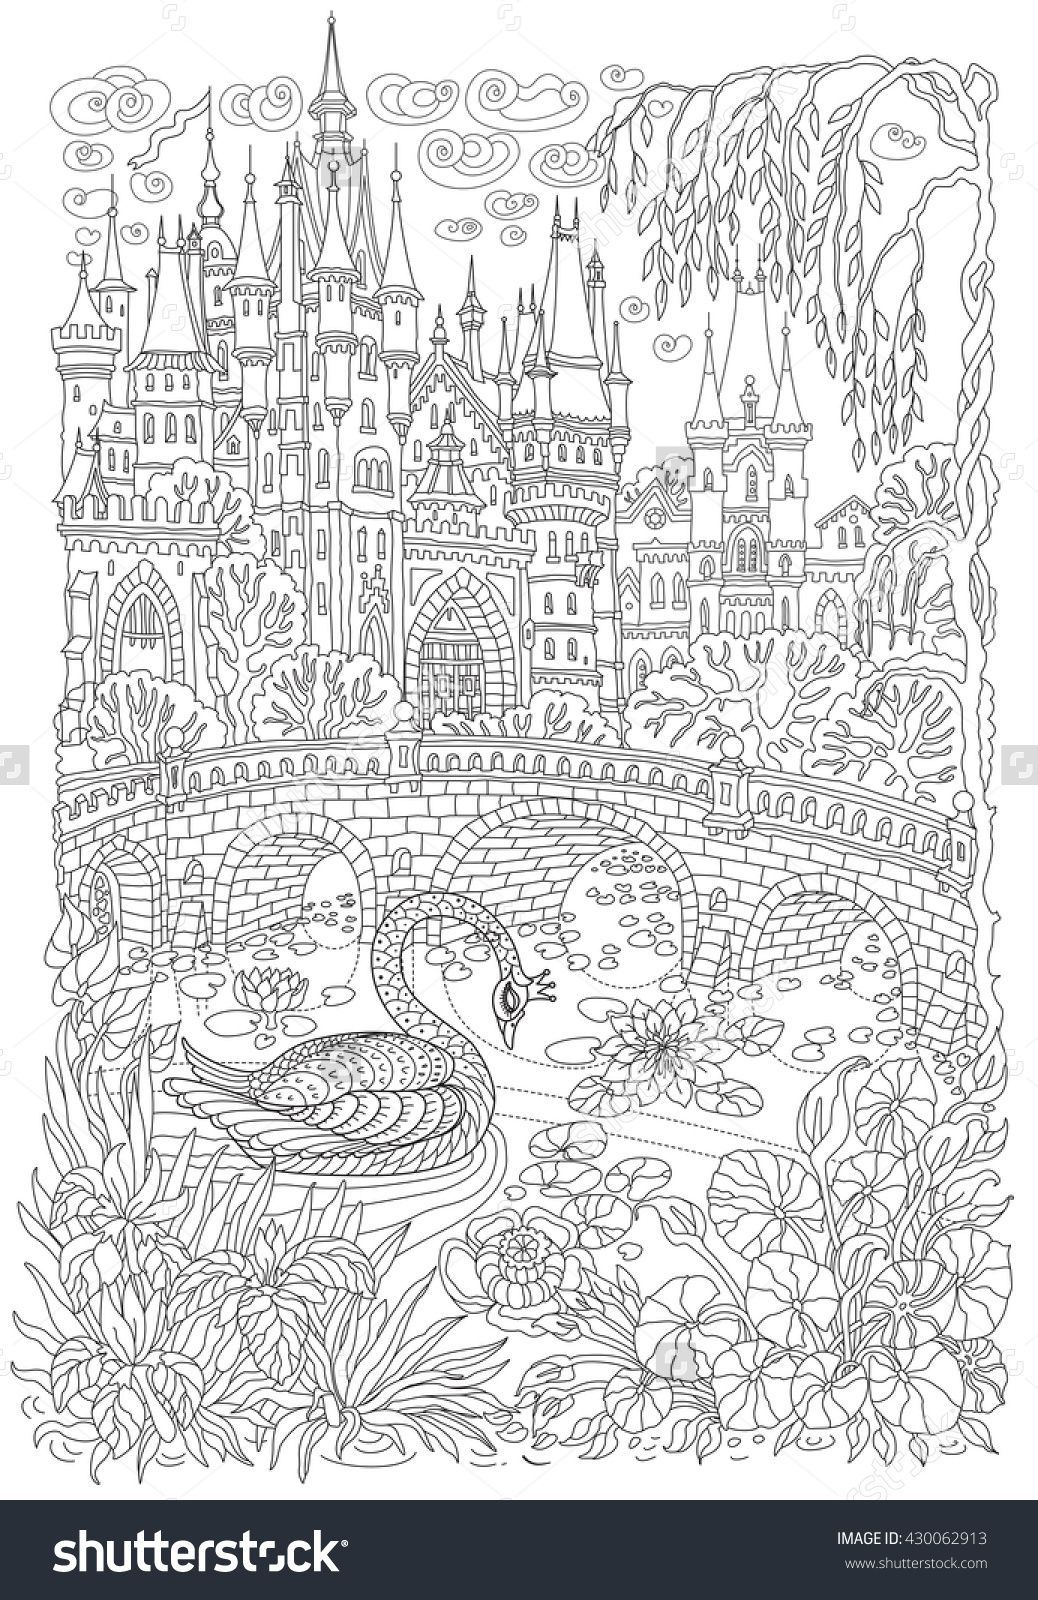 Pin On Landscape Coloring Pages